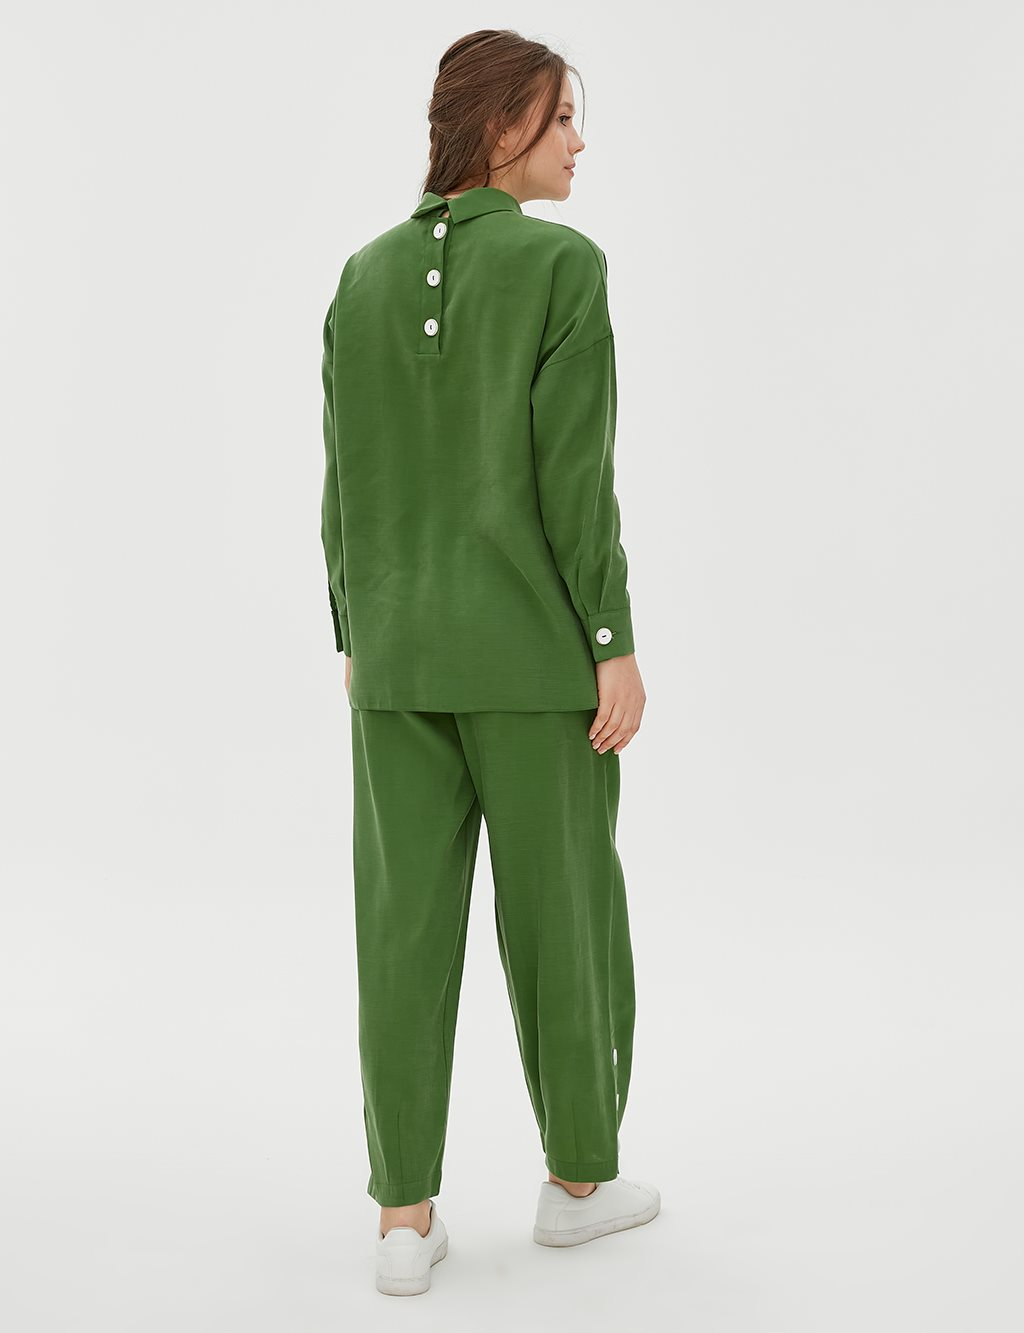 Button Detailed Oversize Suit B20 16008 Green